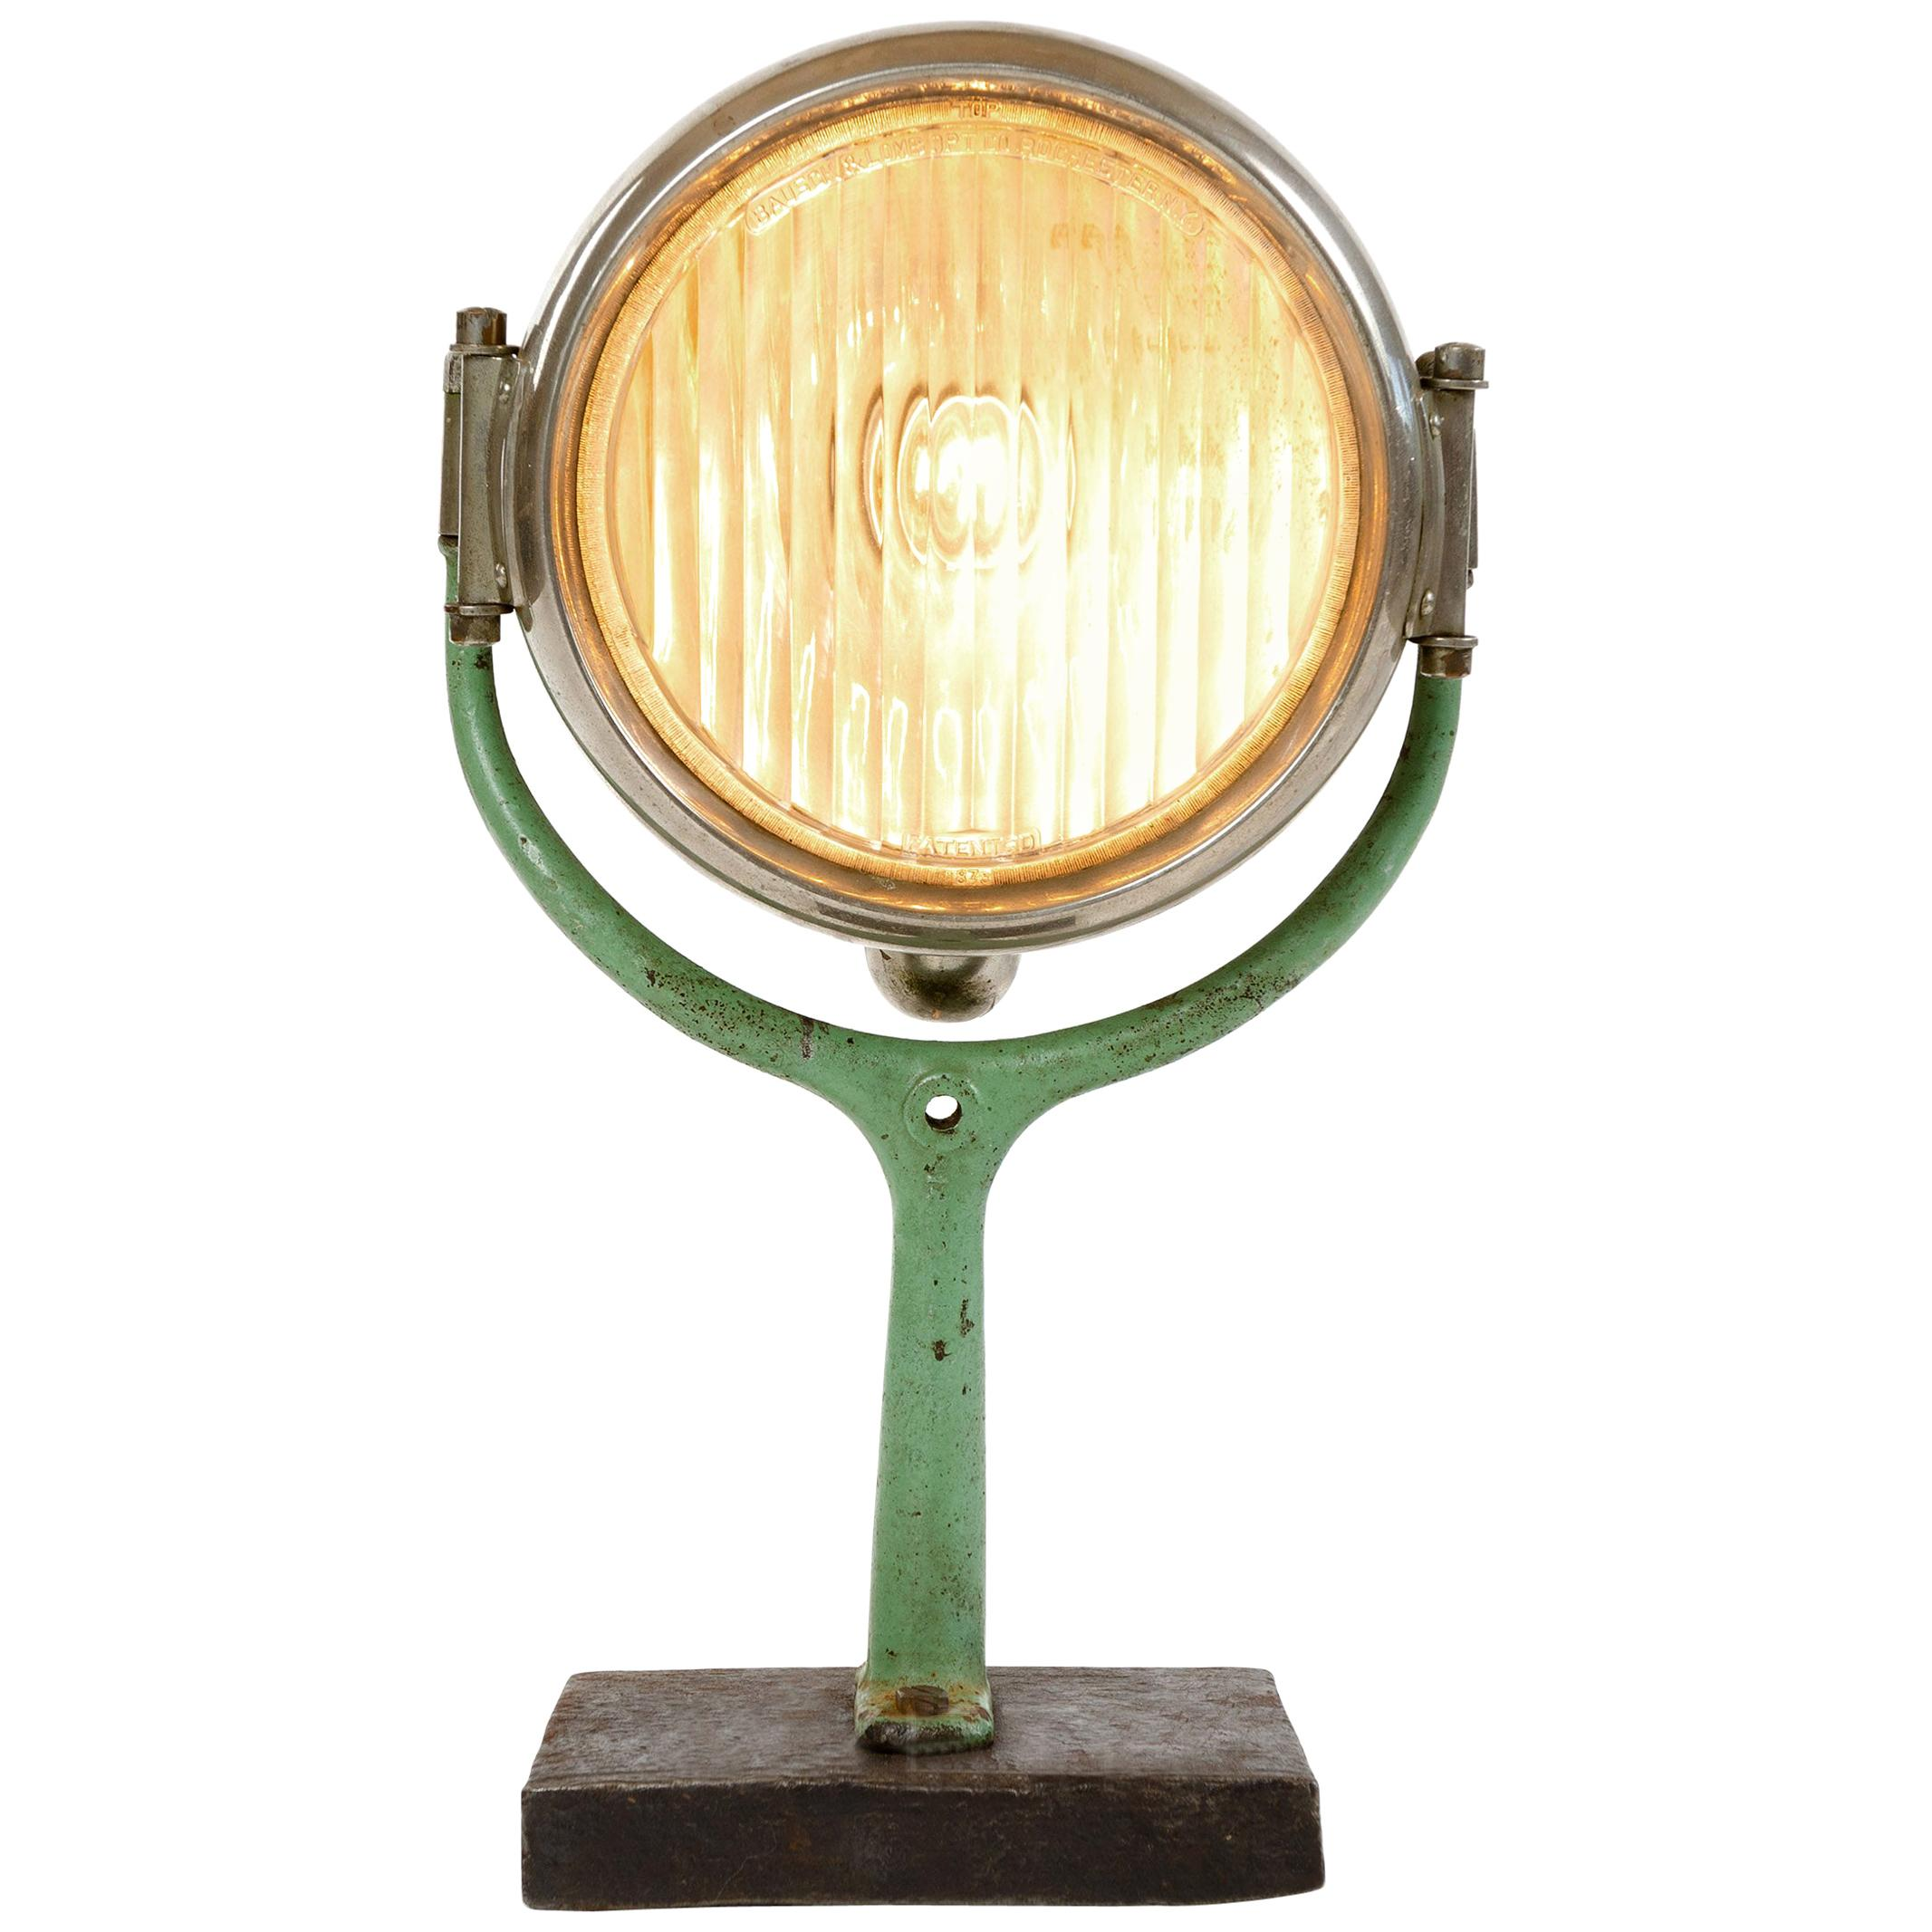 1920s Industrial Electric Spotlight by Superior Lamp Mfg